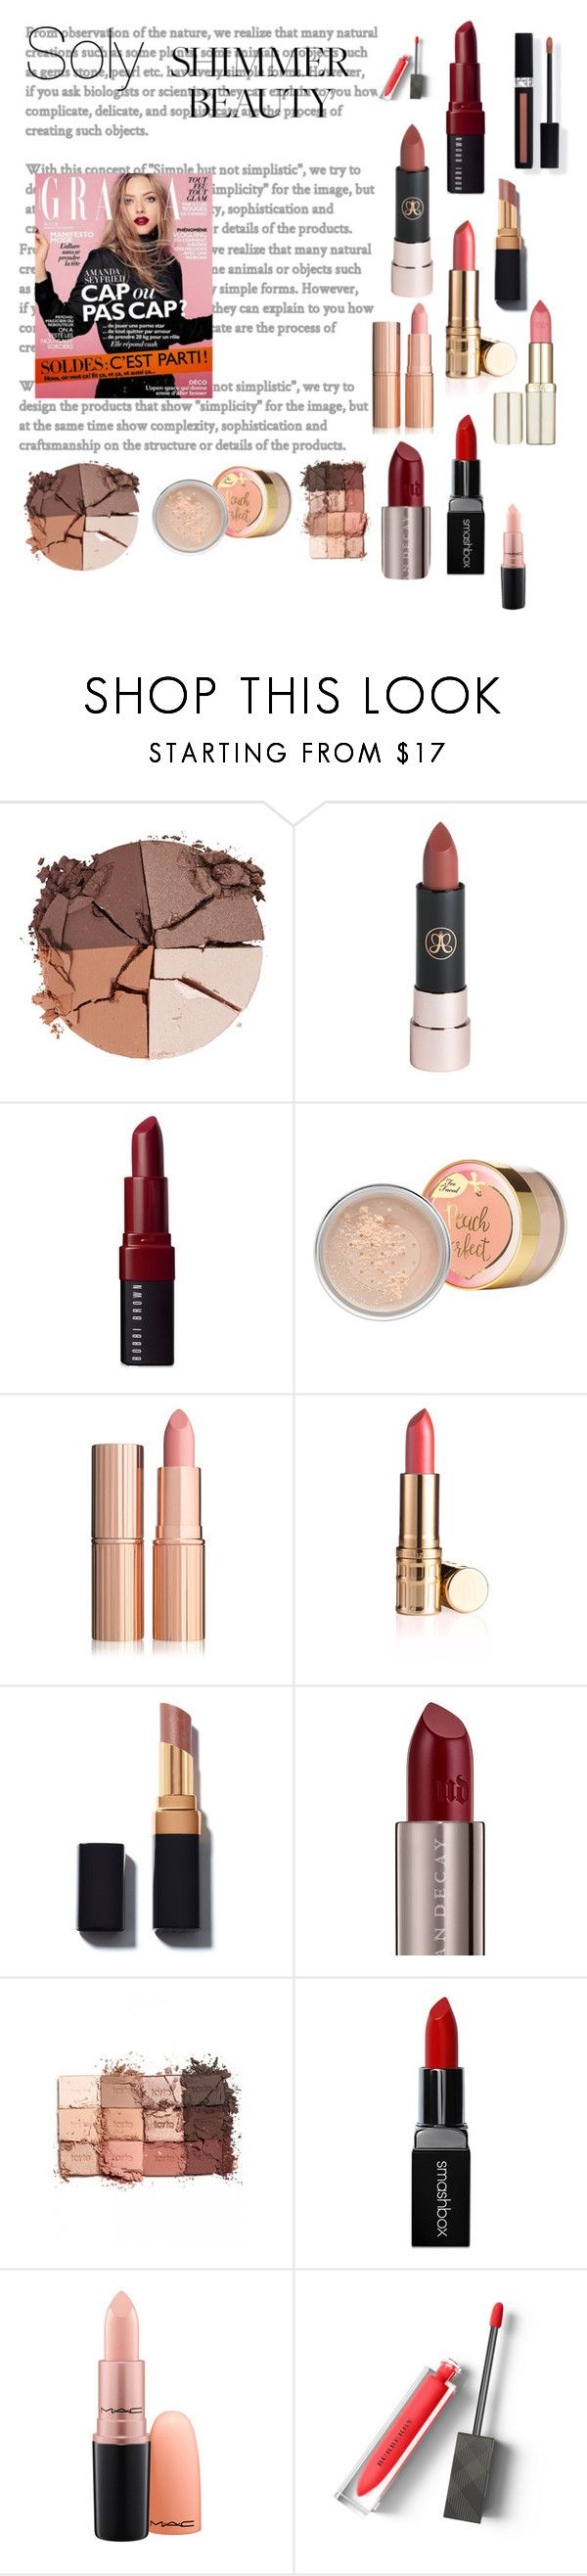 """""""Soly: which lipstick"""" by solyslstore ❤ liked on Polyvore featuring beauty, lilah b., Bobbi Brown Cosmetics, Urban Decay, tarte, Smashbox, Couture Colour and Burberry"""